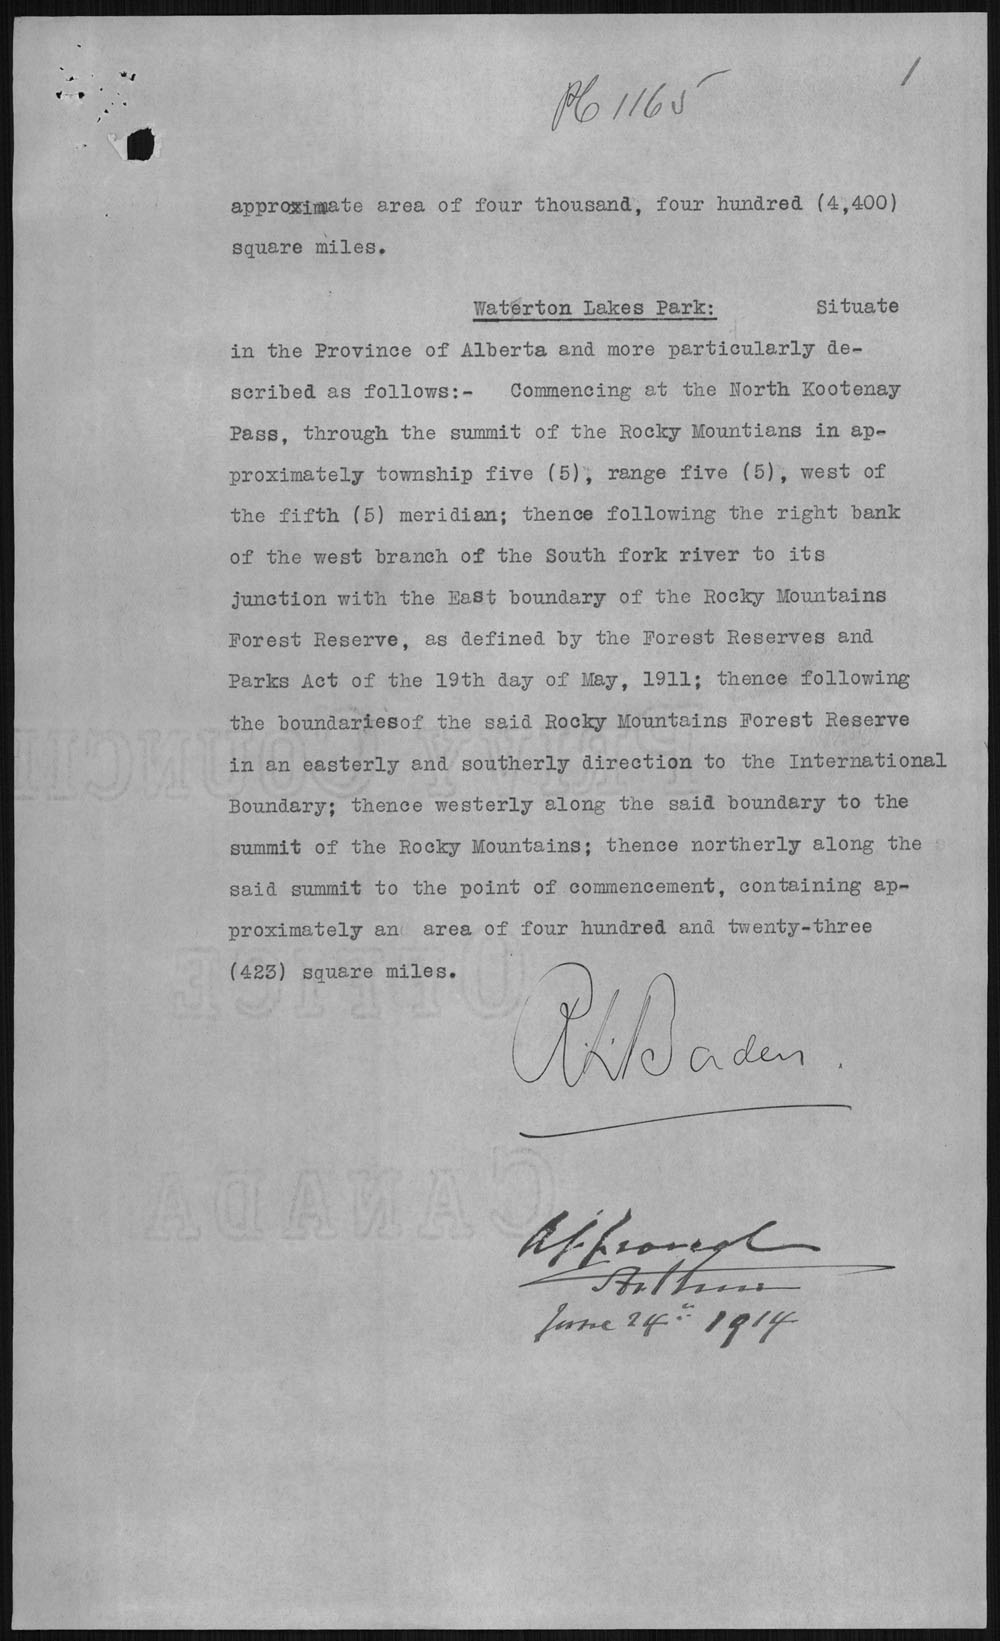 Digitized page of Orders in Council for Image No.: e010877241-v8